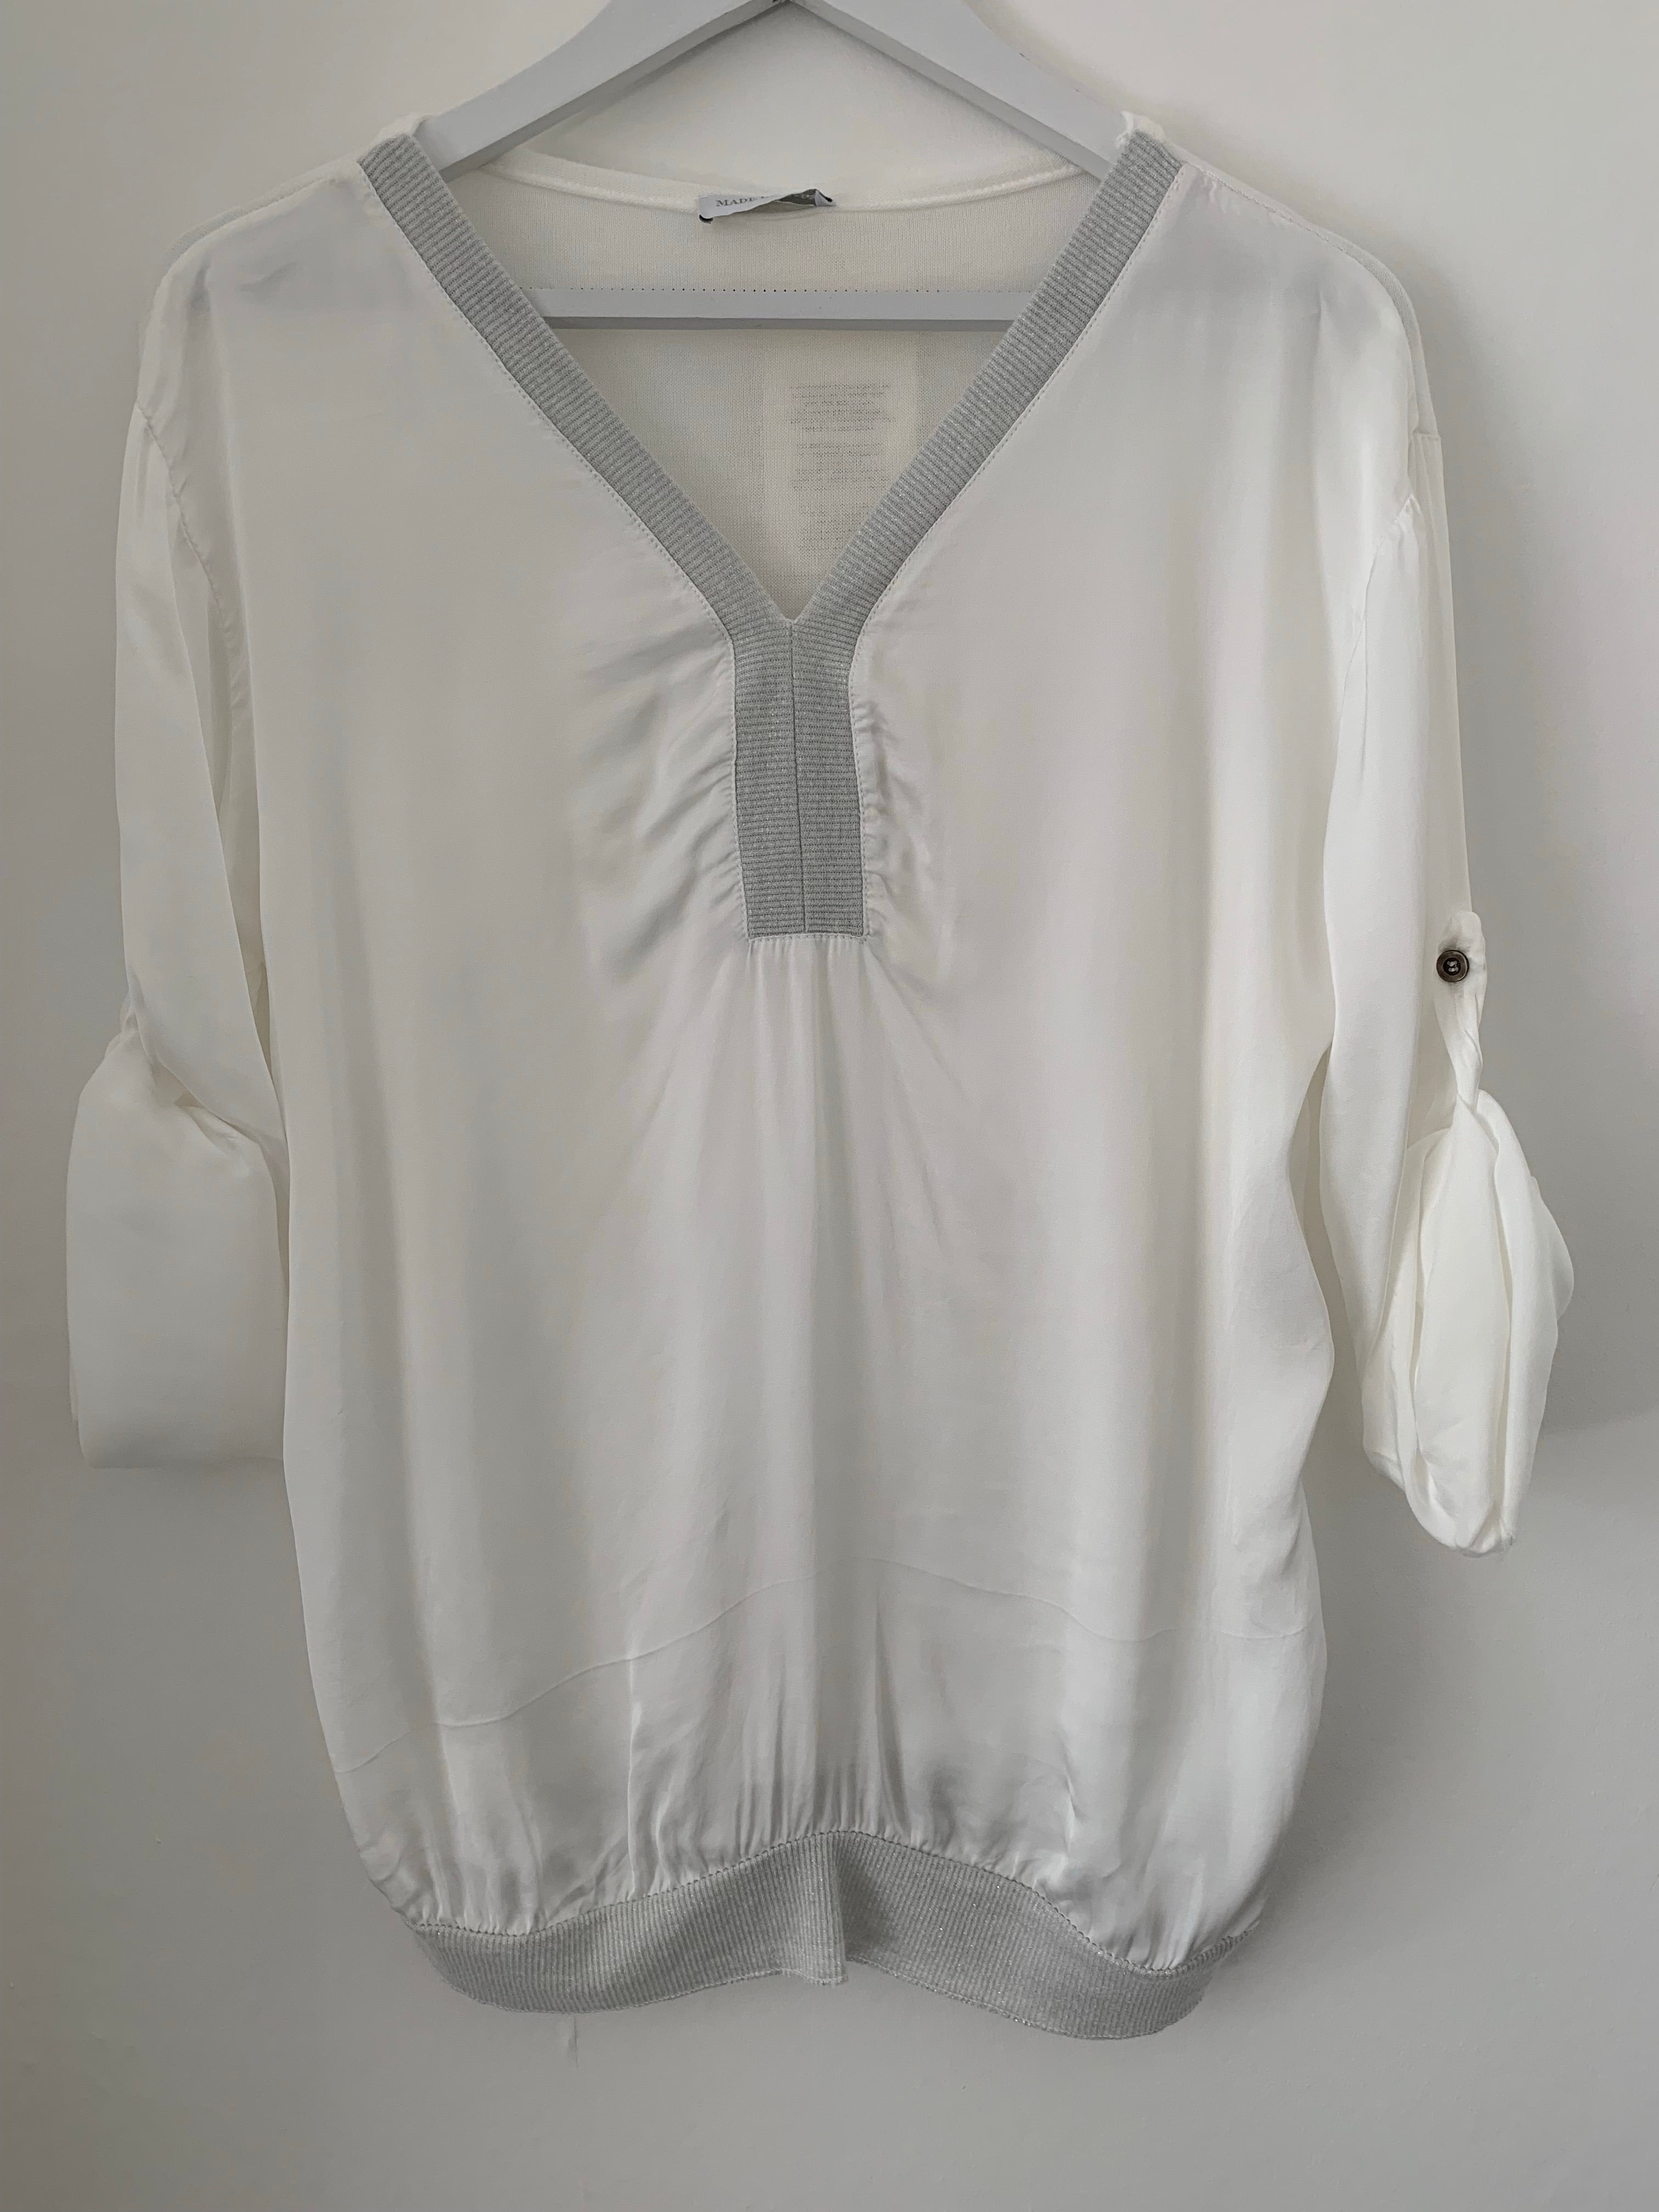 White Silky Top with Roll up Sleeves